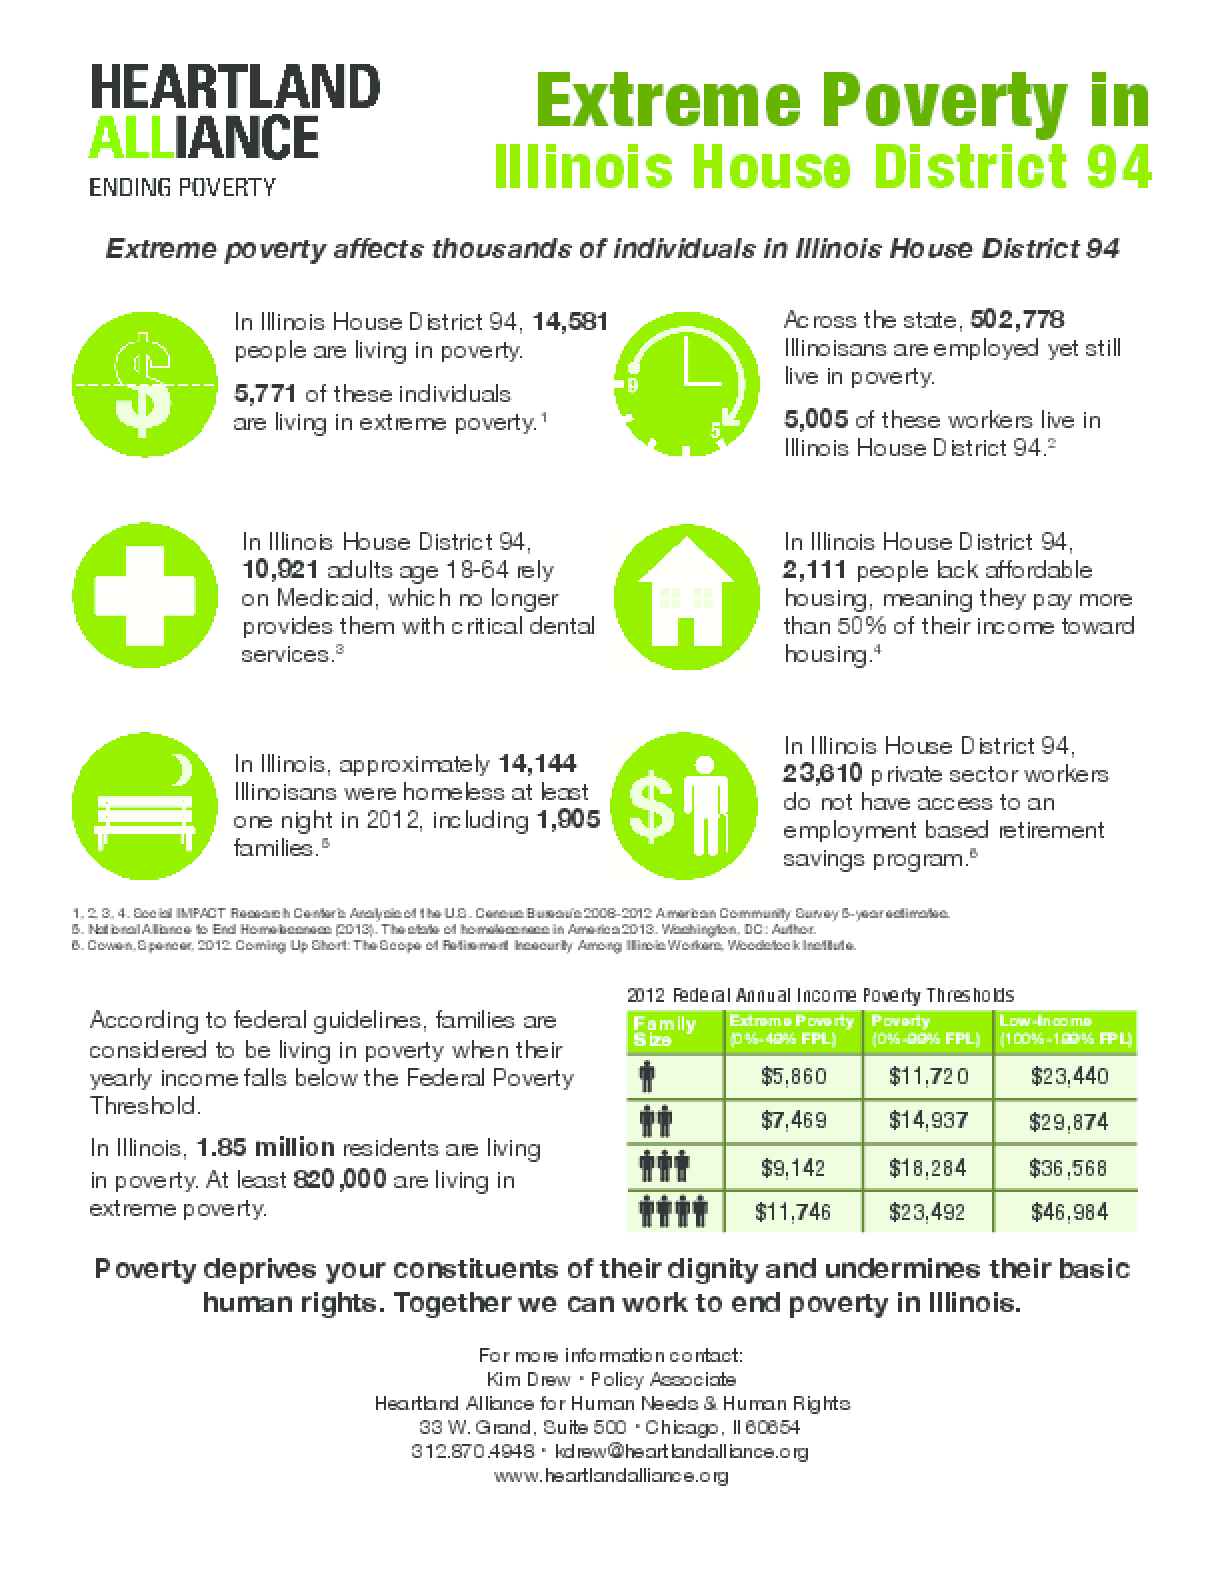 Poverty Fact Sheets for Illinois House District 94